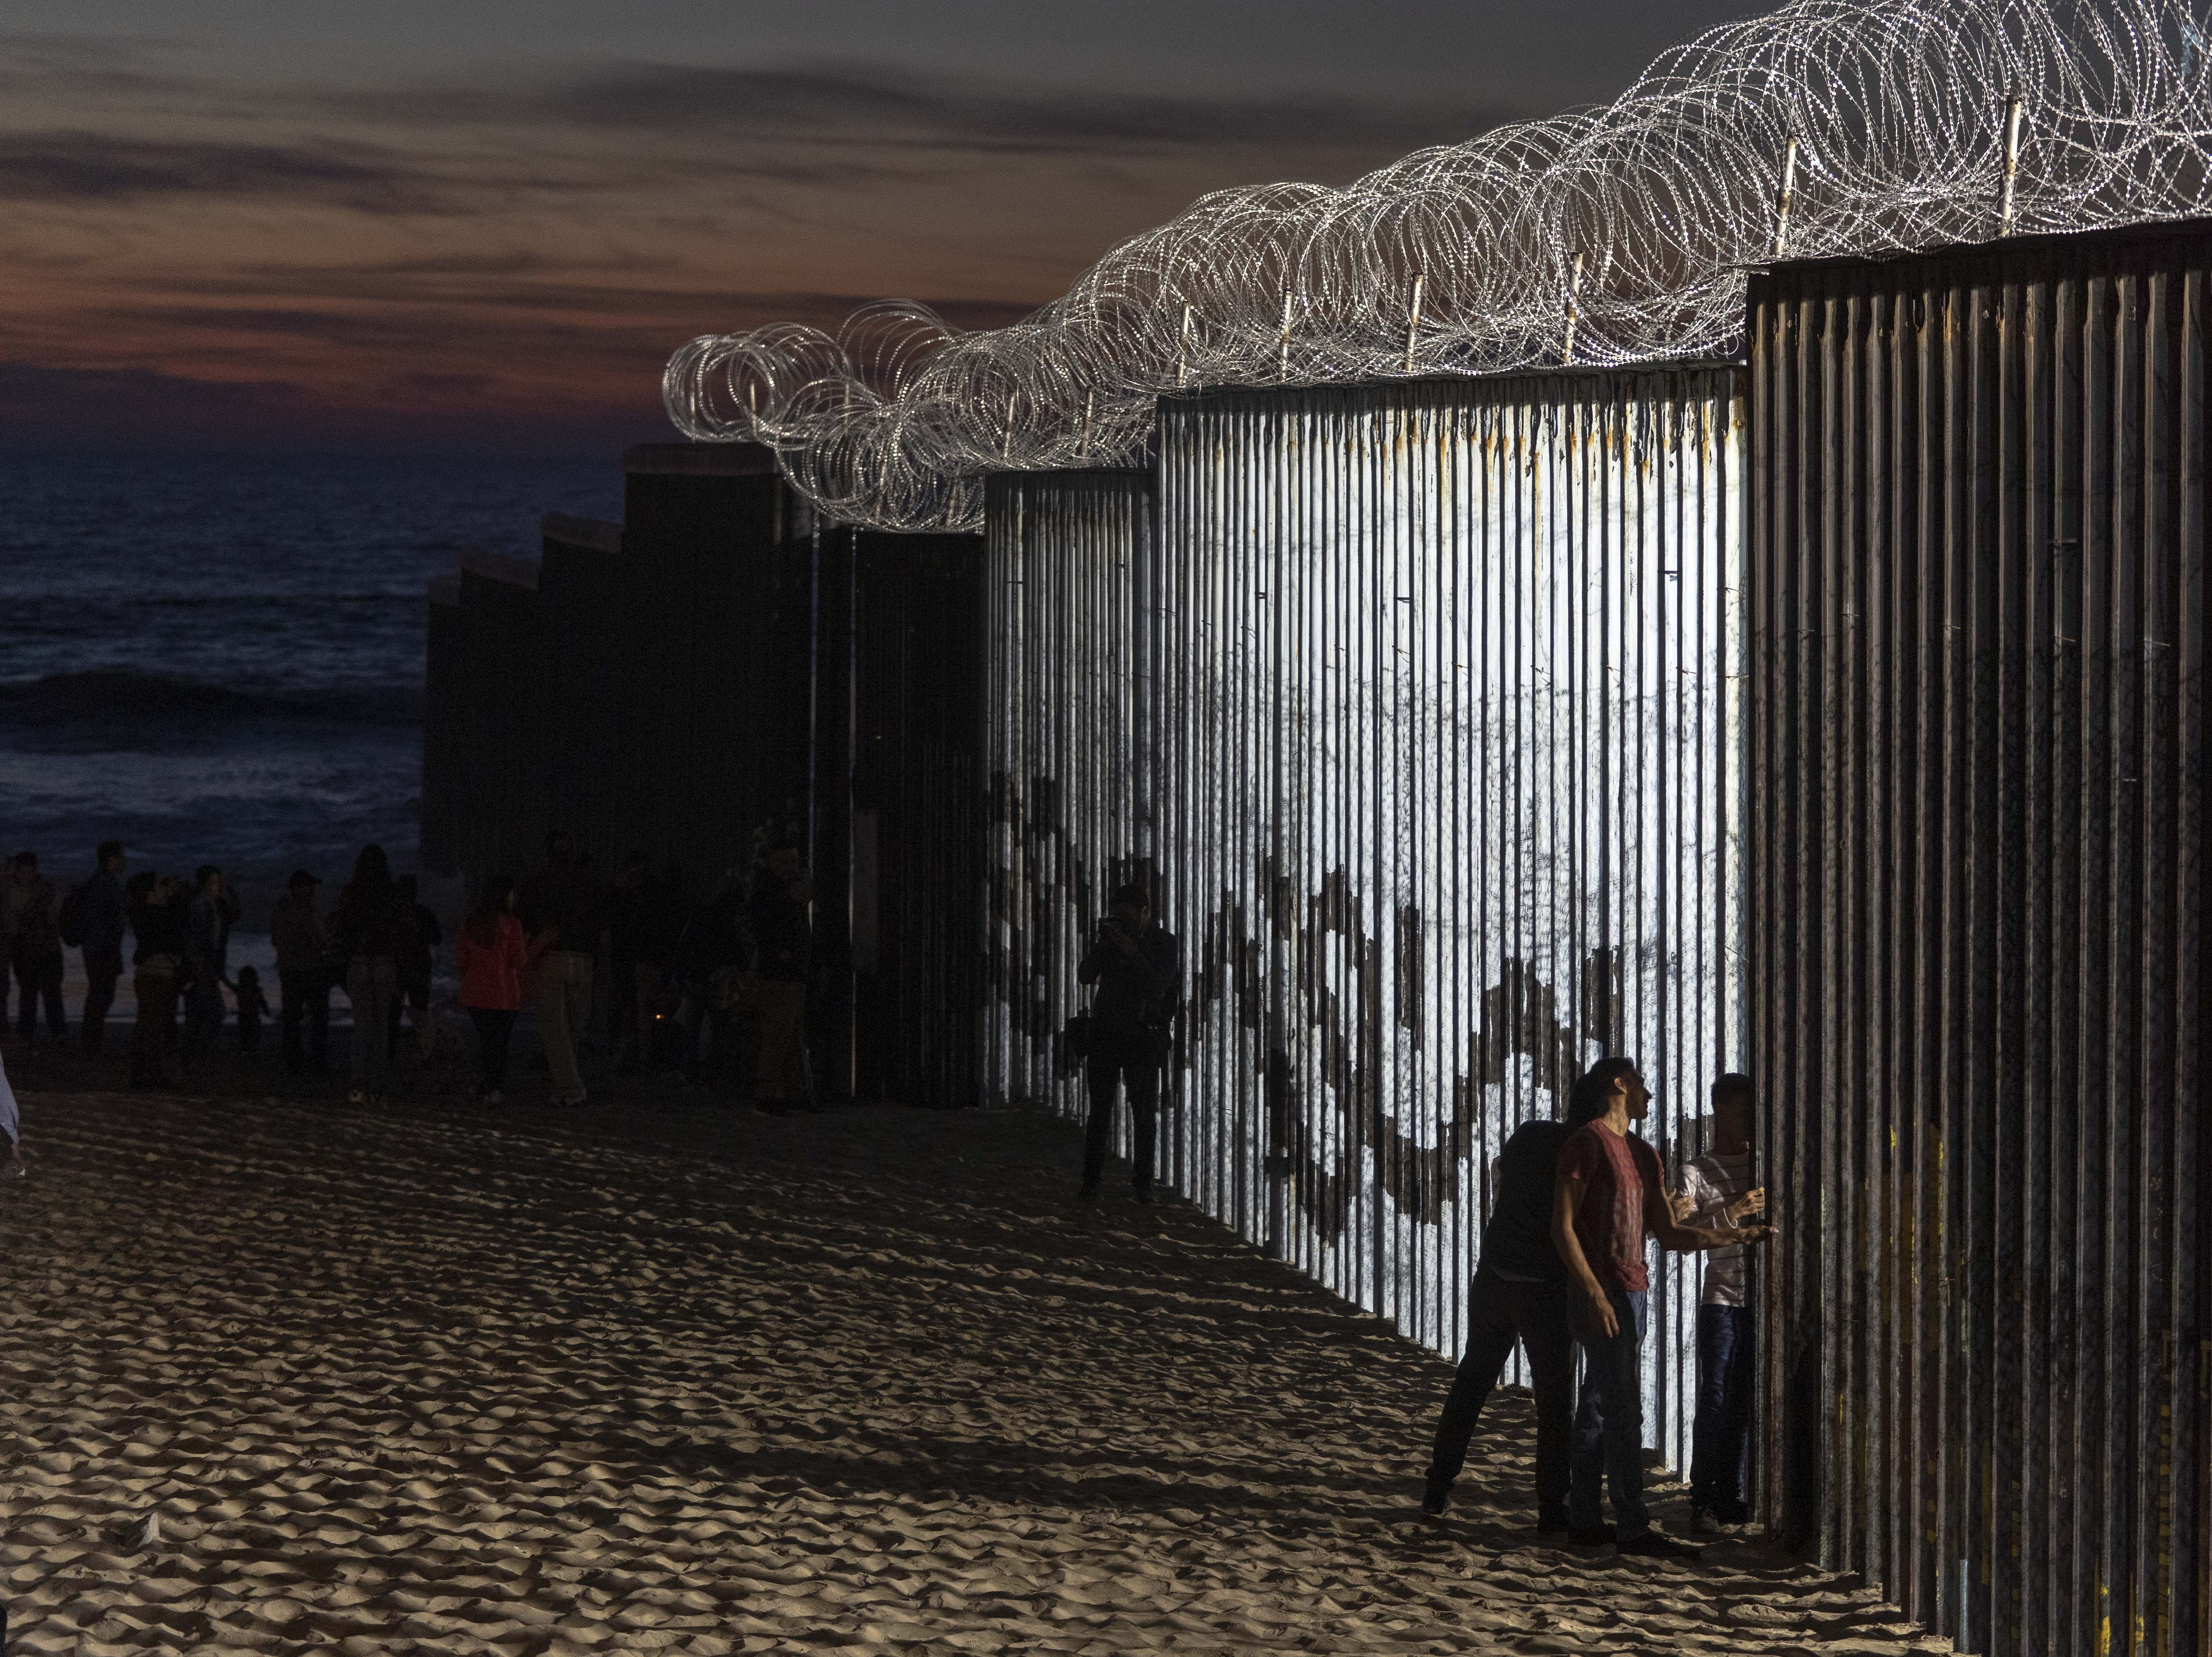 The barbed wire perched atop the U.S.-Mexico border fence, seen here Nov. 18, 2018, has become a viewing attraction for visitors to the popular Playas de Tijuana neighborhood south of San Diego.